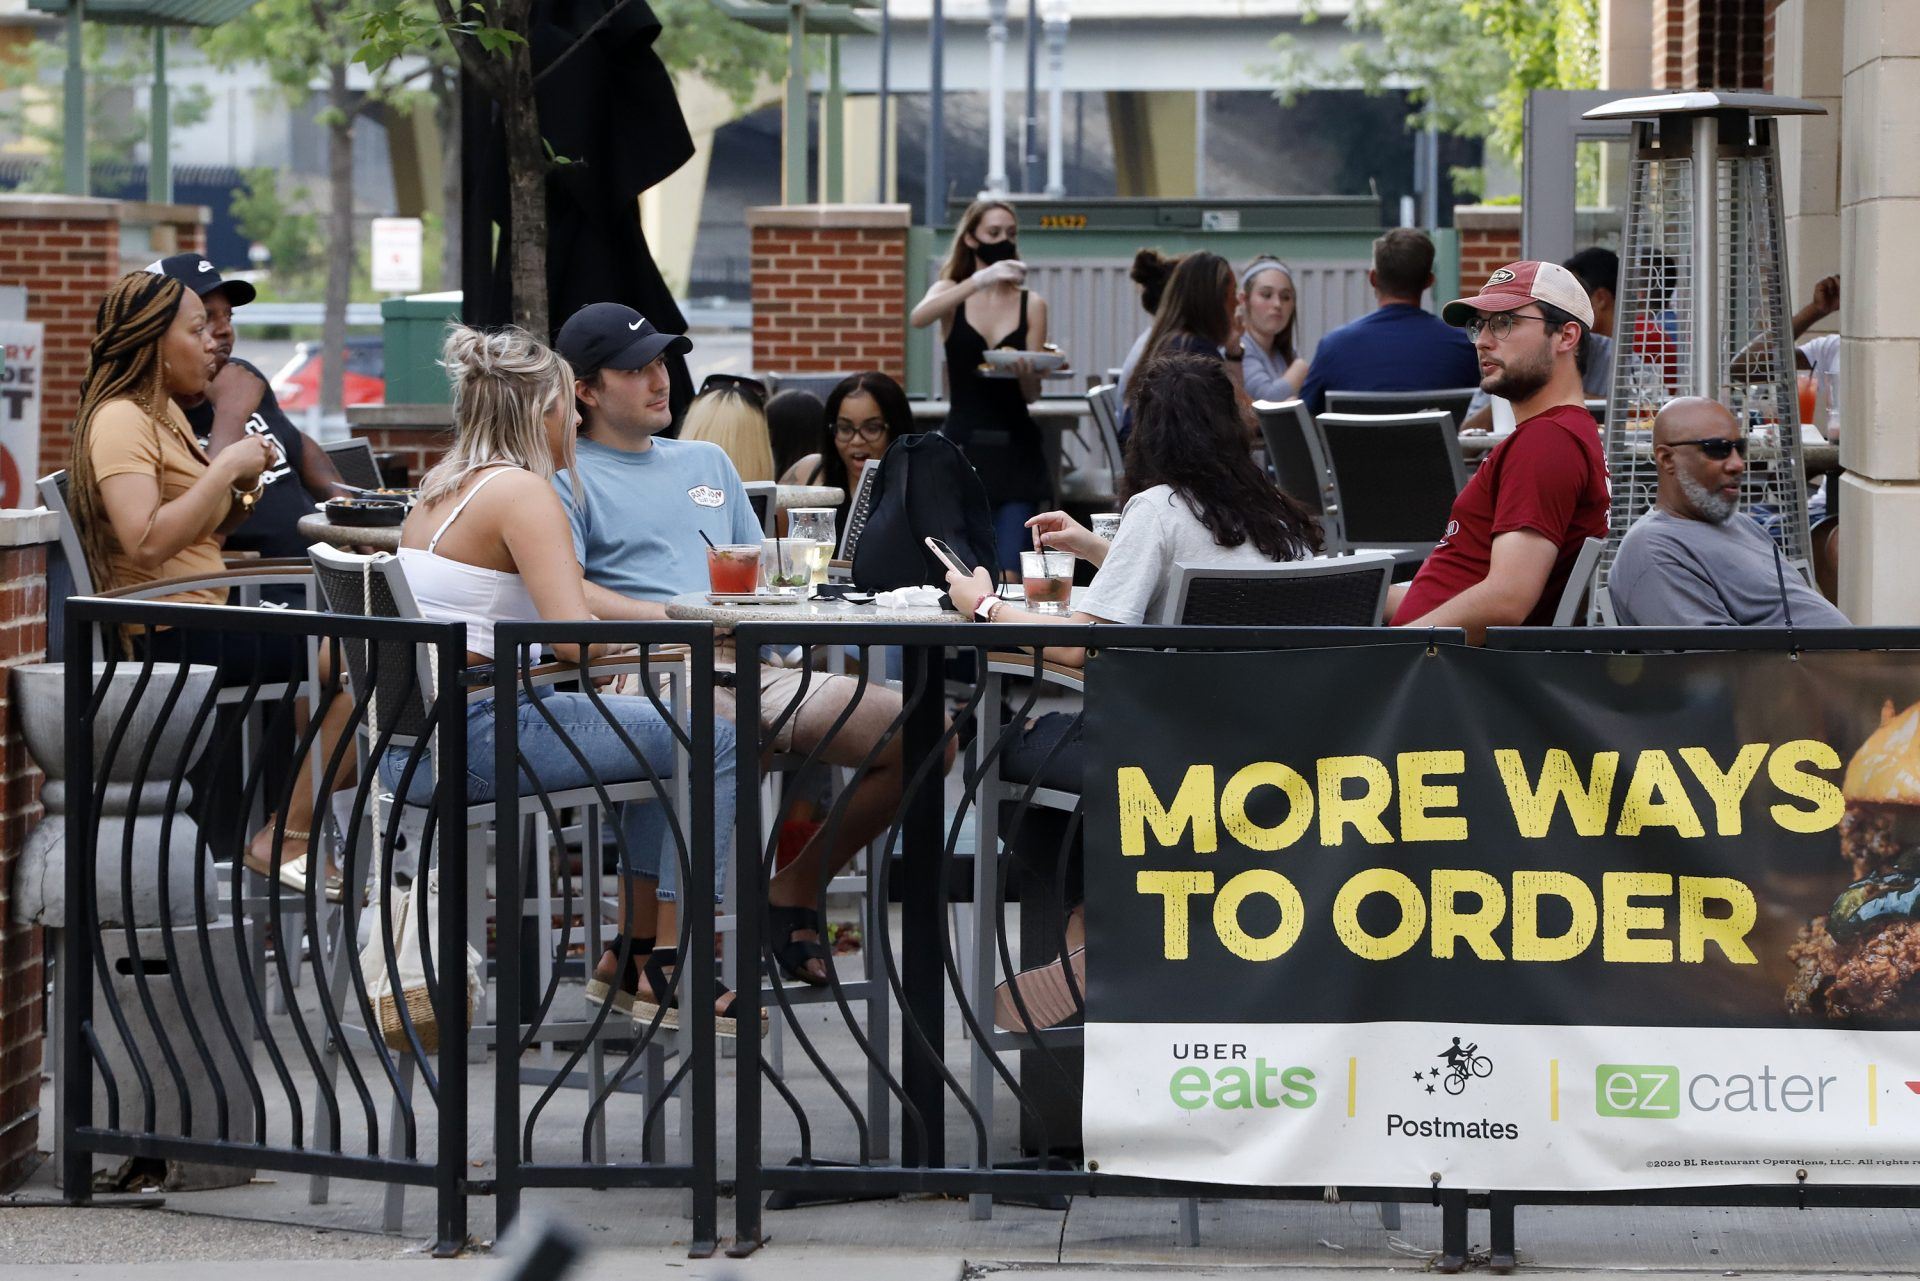 People gather at tables outside Bar Louie on the Northside of Pittsburgh Sunday, June 28, 2020. In response to the recent spike in COVID-19 cases in Allegheny County, health officials are ordering all bars and restaurants in the county to stop the sale of alcohol for on-site consumption beginning on June 30.